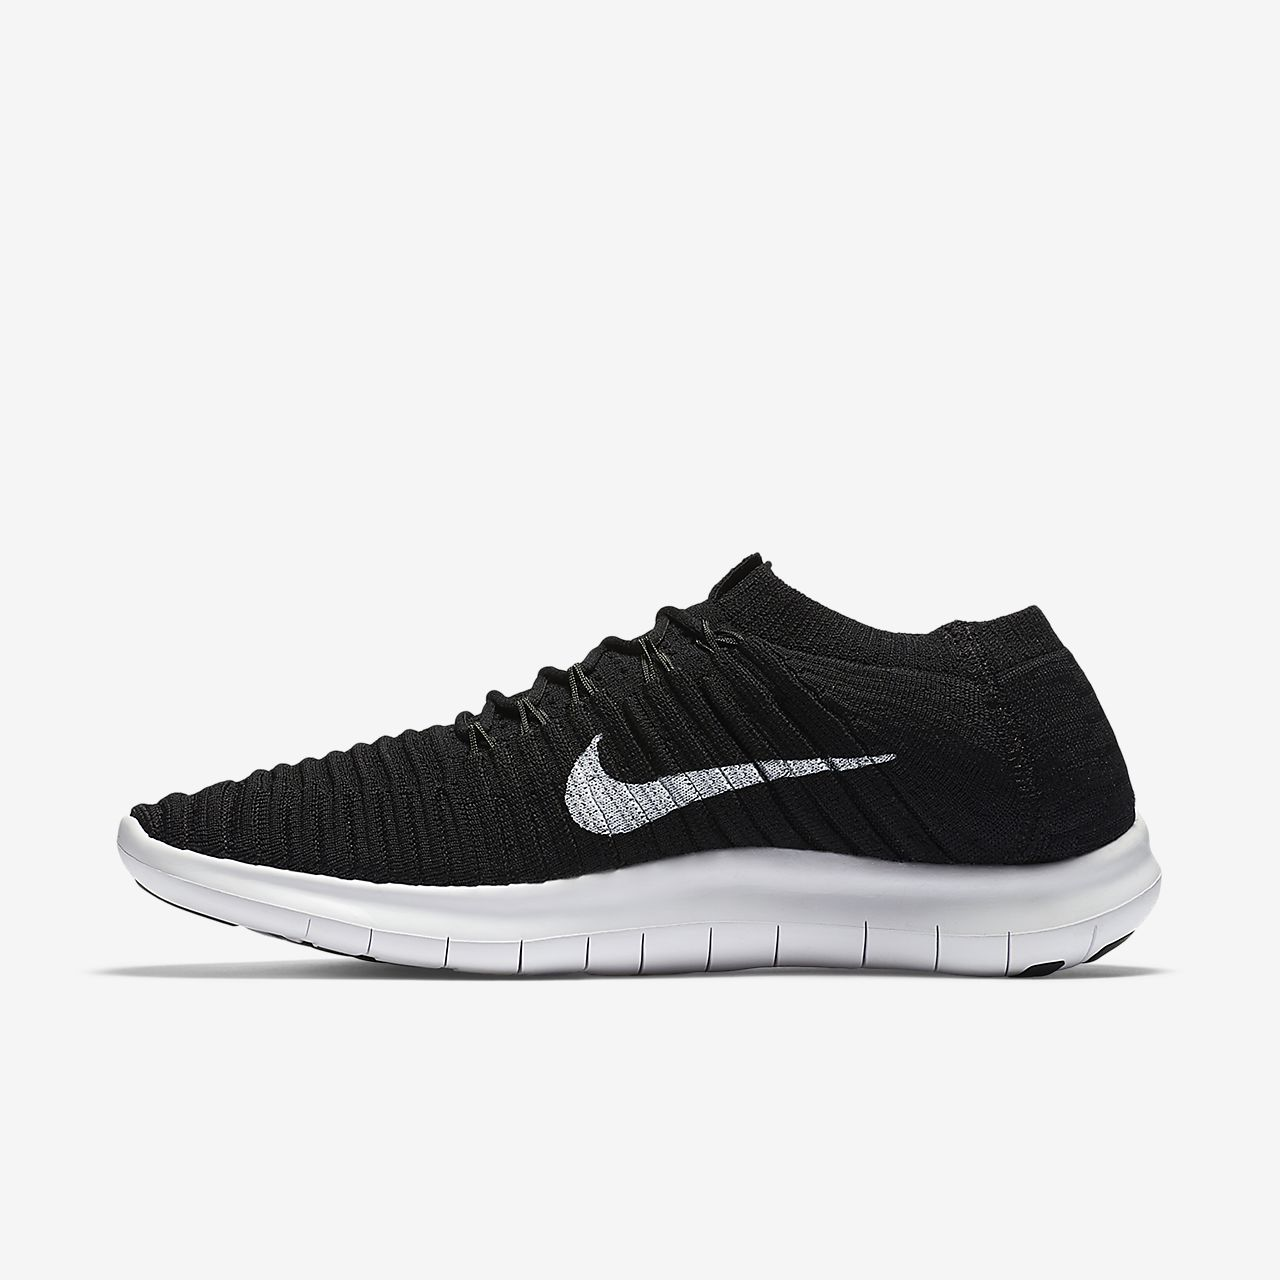 Nike Free Run + 3,0 Chaussures Pour Femmes Aw12915